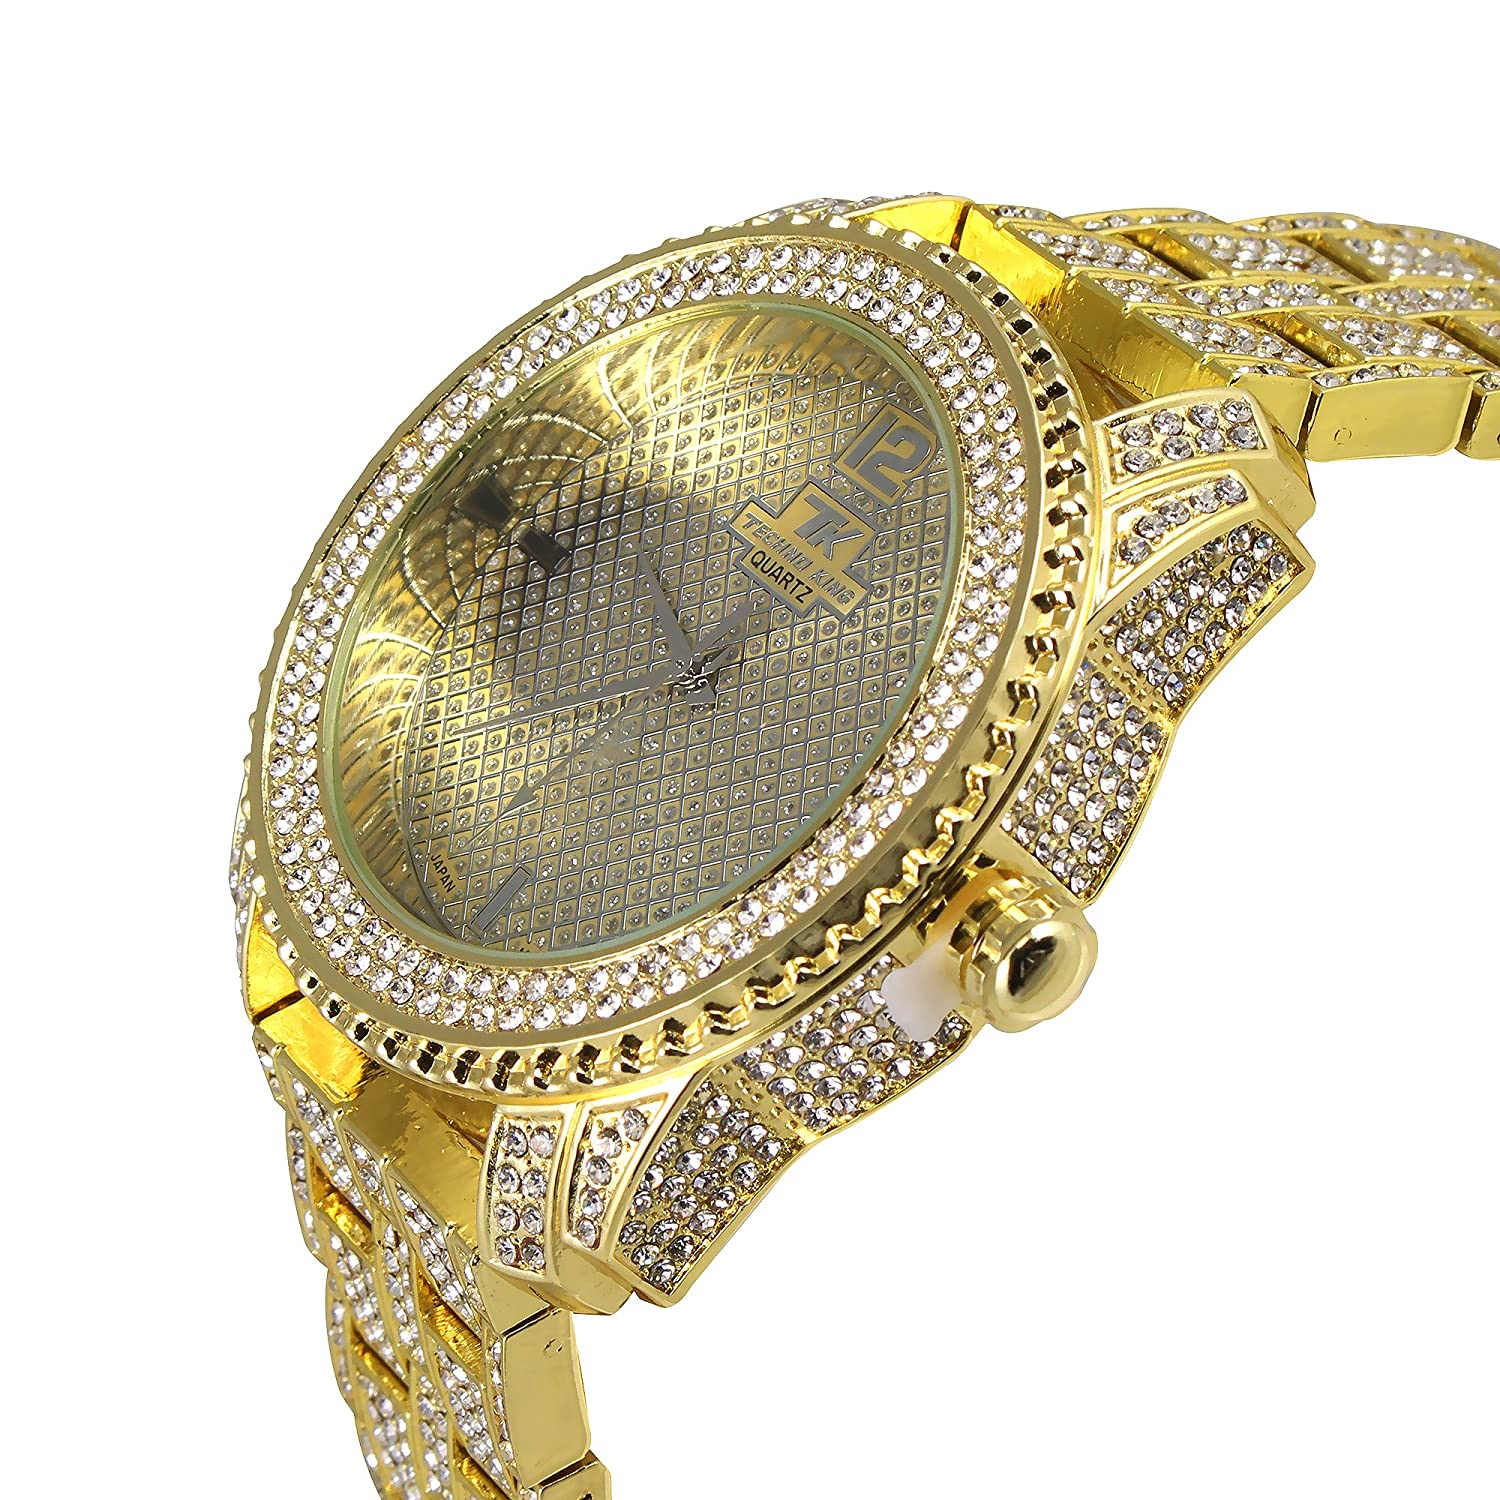 Techno KING Men s Fashion Soul of Stone Series Golden World Watch 1078GM Gold